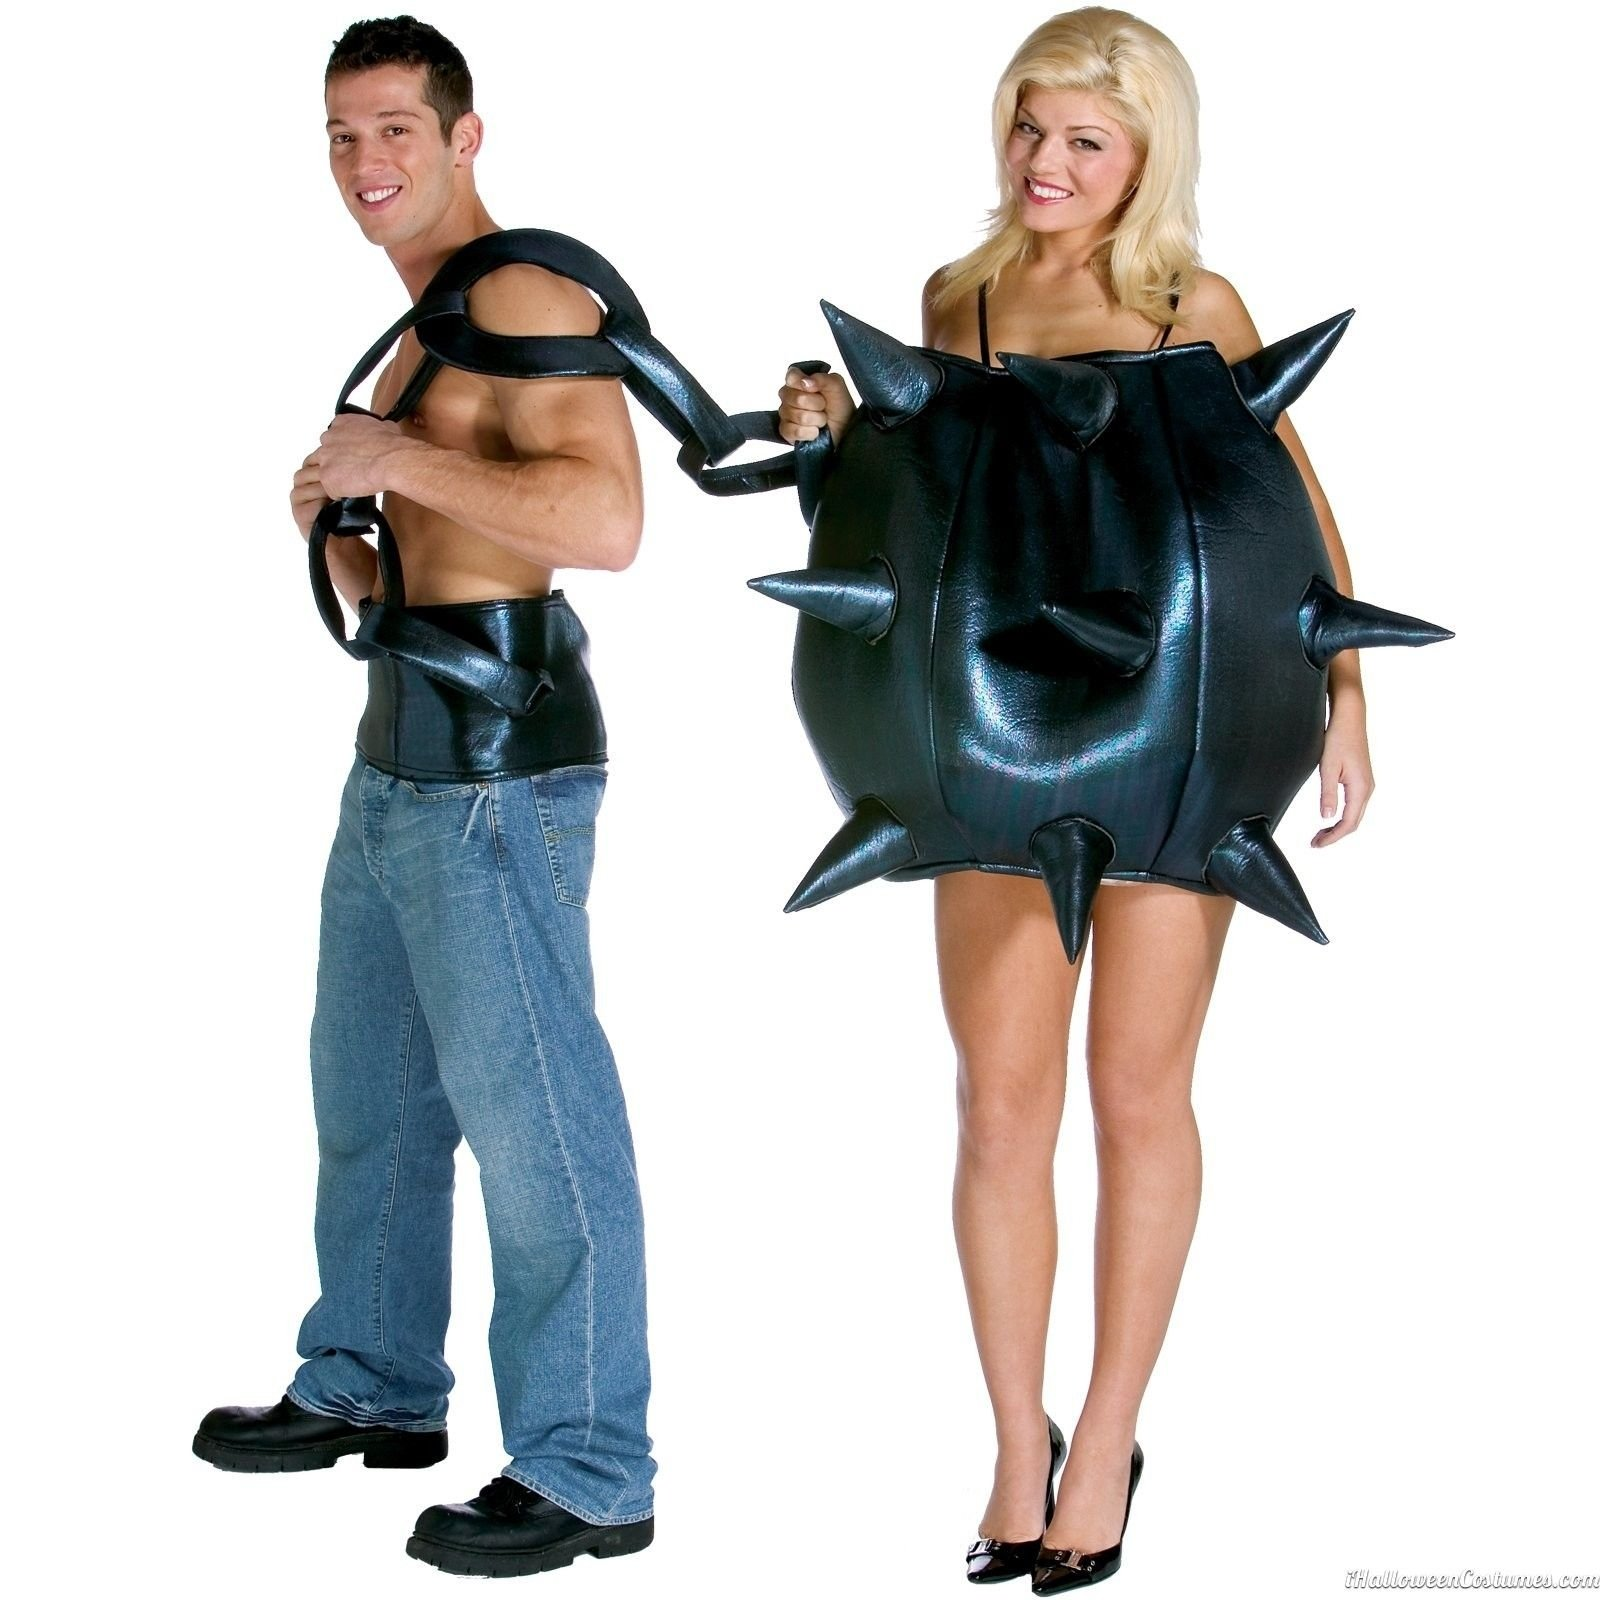 10 Perfect Couples Funny Halloween Costume Ideas halloween costumes for couples the married couple very funny 2021